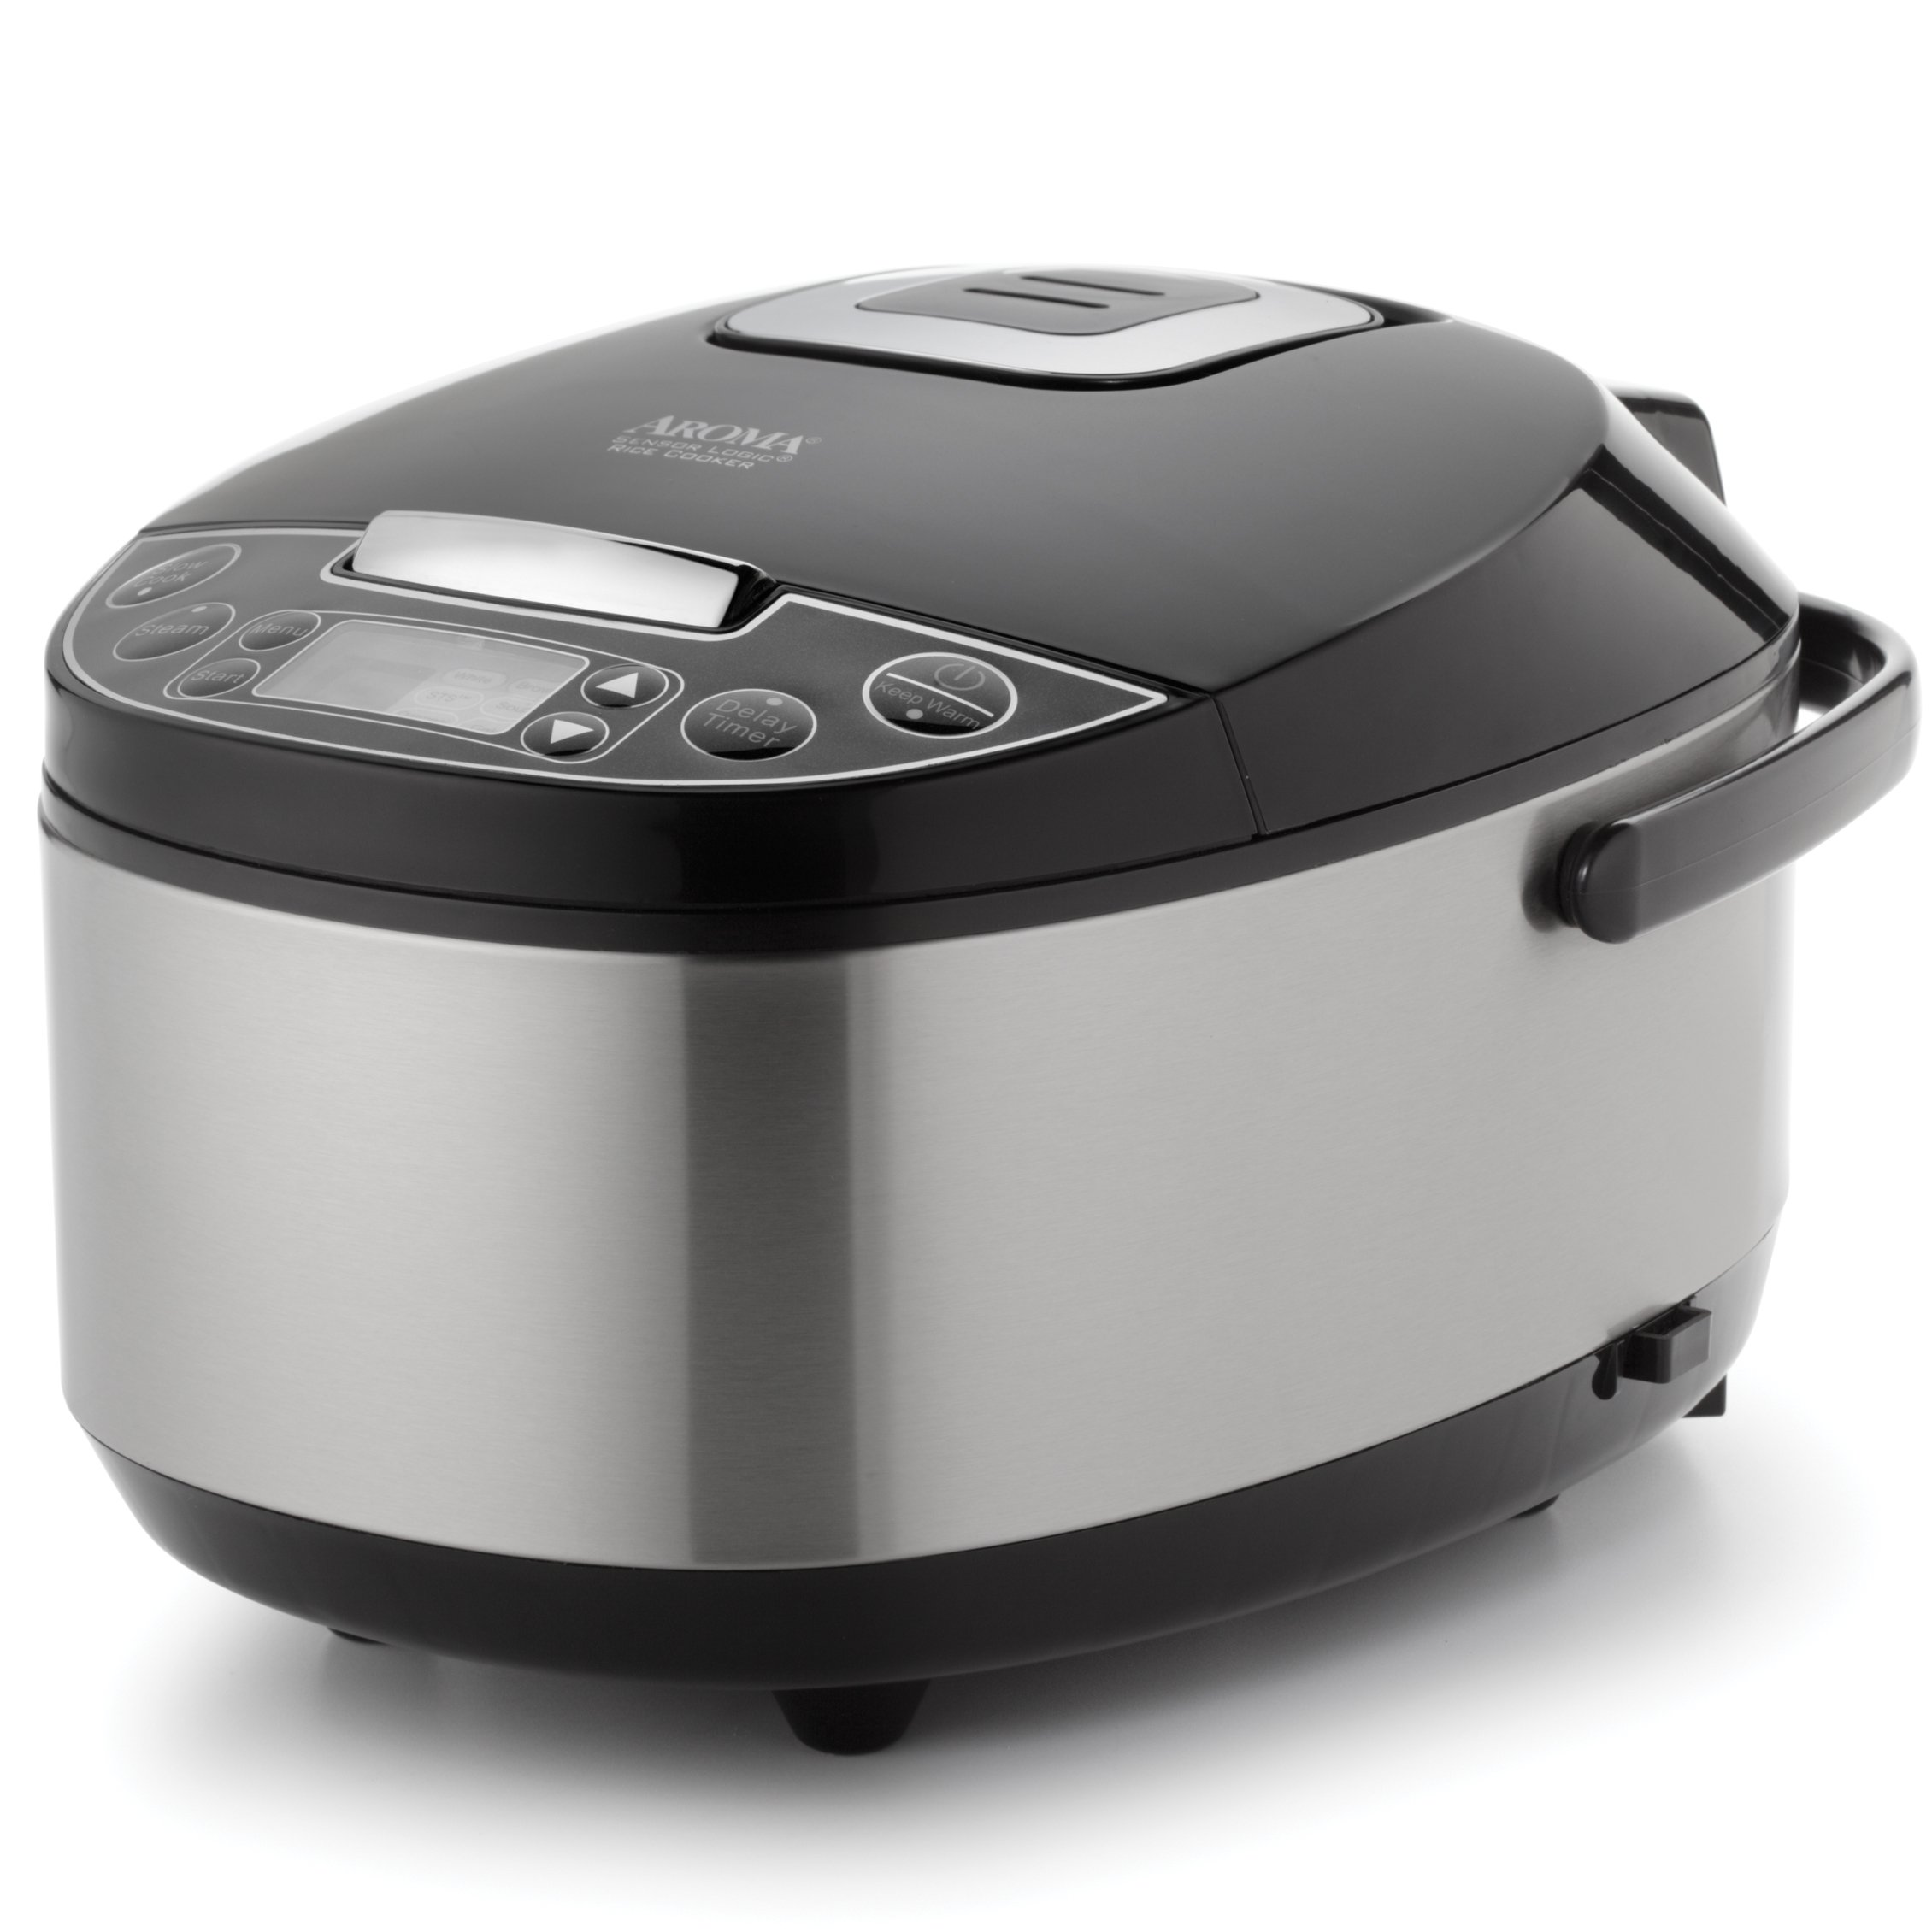 aroma professional 20 cup cooked 10 cup uncooked rice cooker food steame. Black Bedroom Furniture Sets. Home Design Ideas